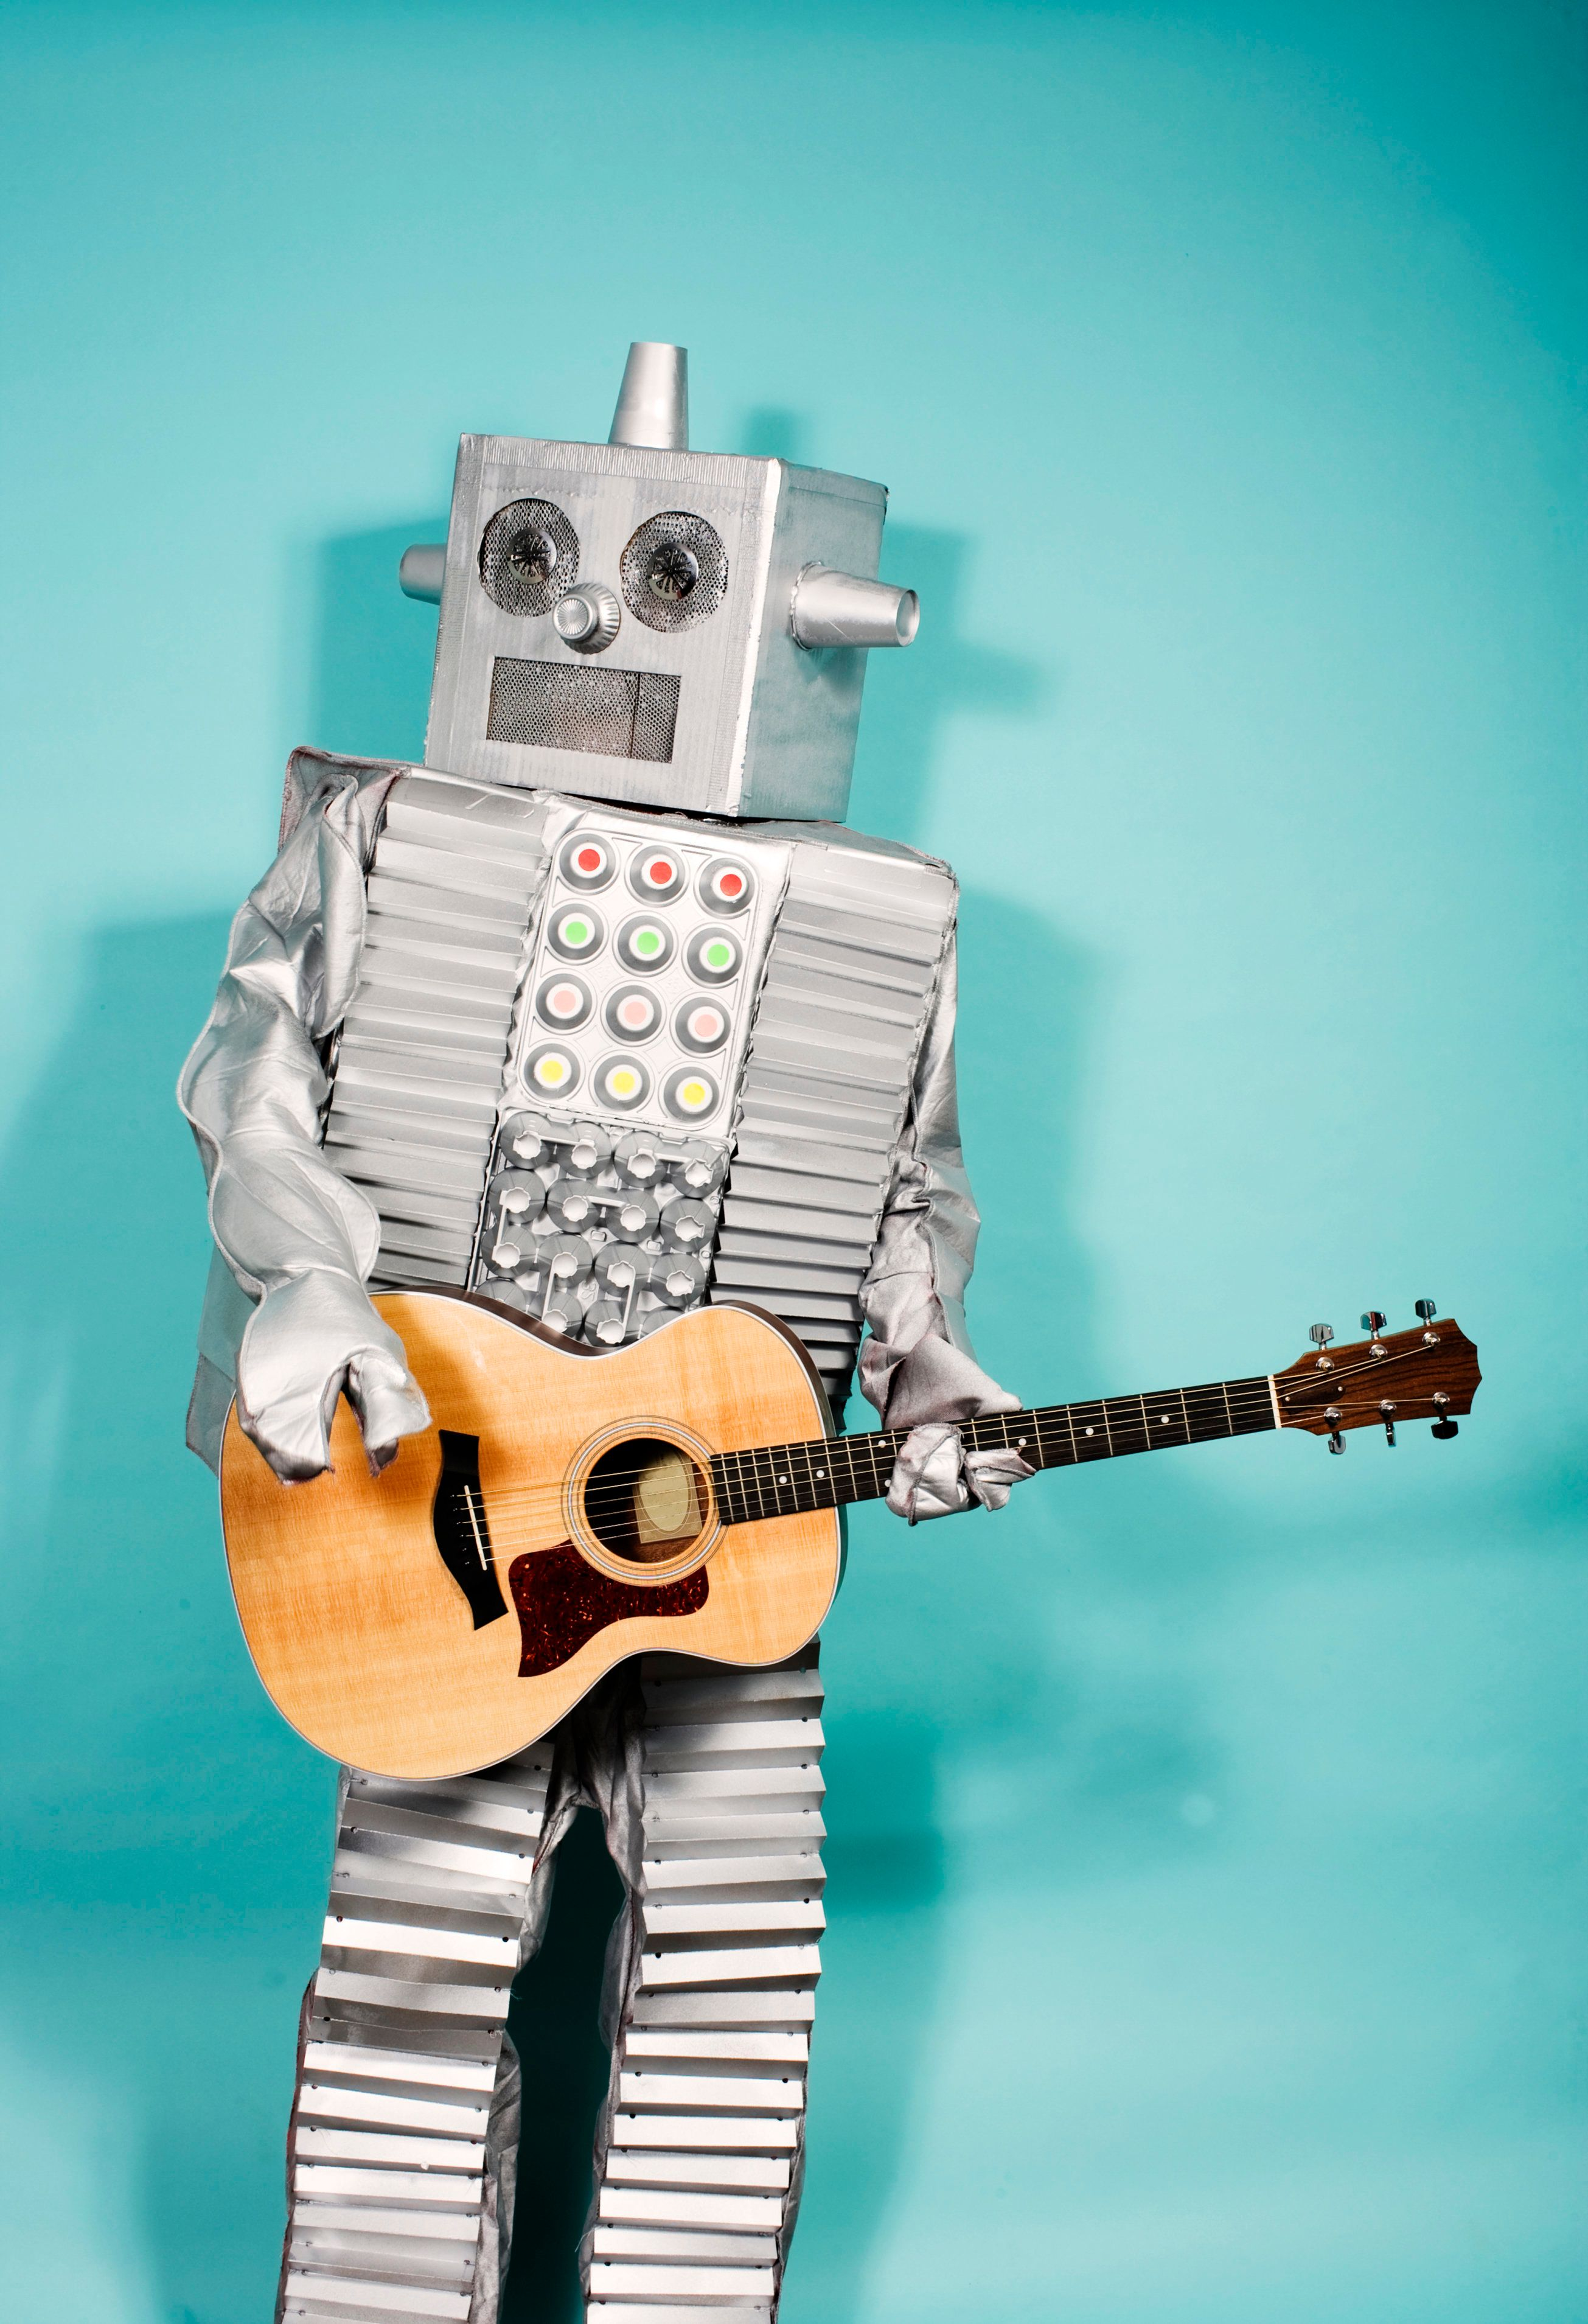 Is a robot like this the next Jonathan Franzen? Probably not.